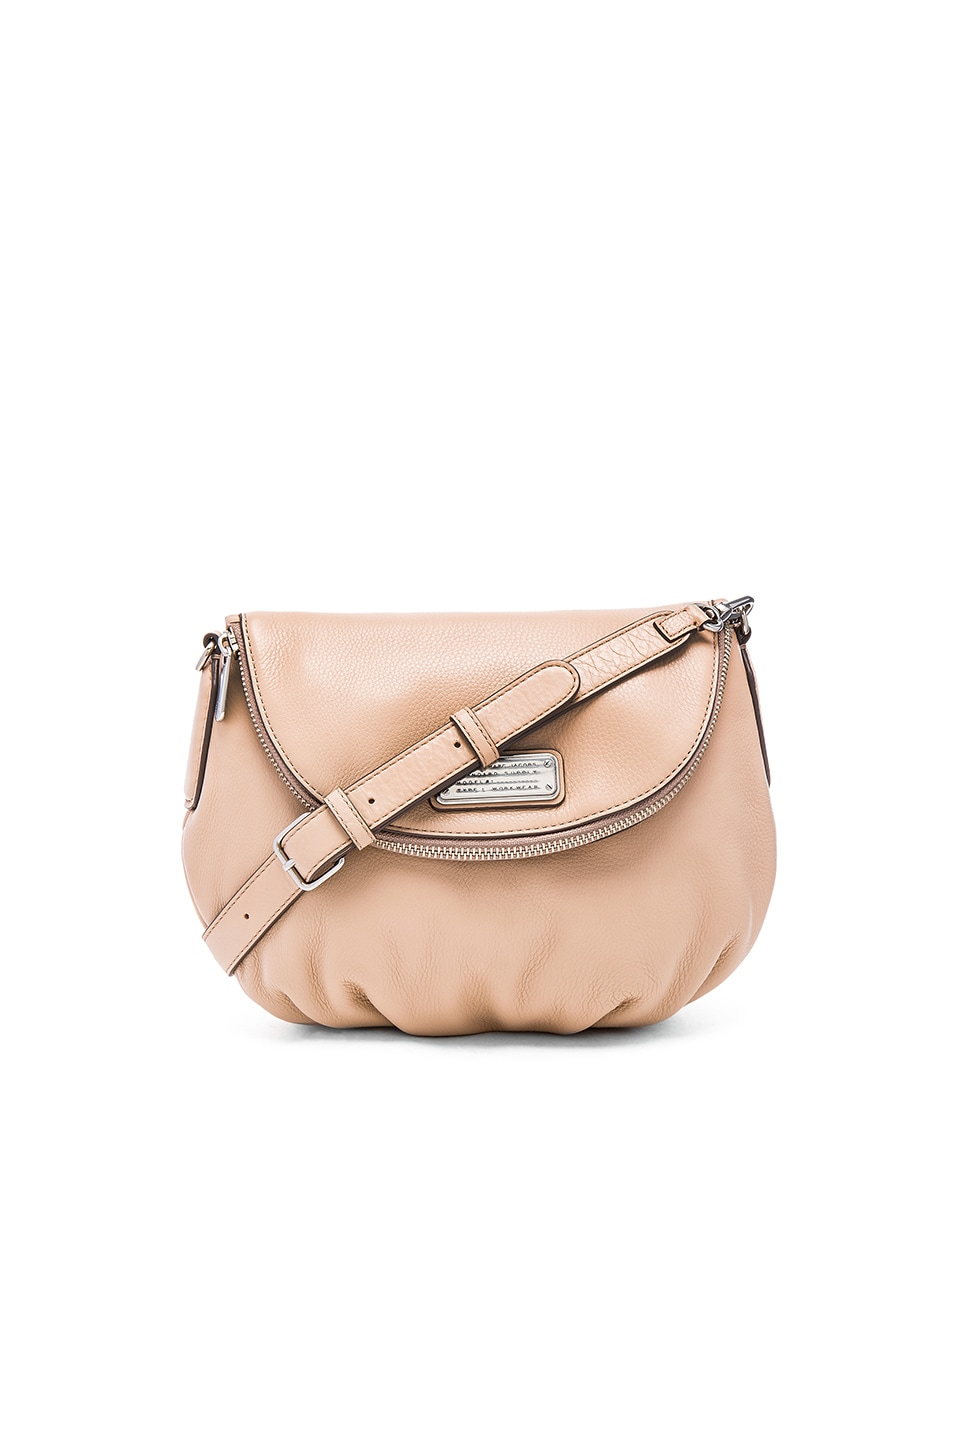 Marc by Marc Jacobs New Q Natasha Crossbody in Cameo Nude